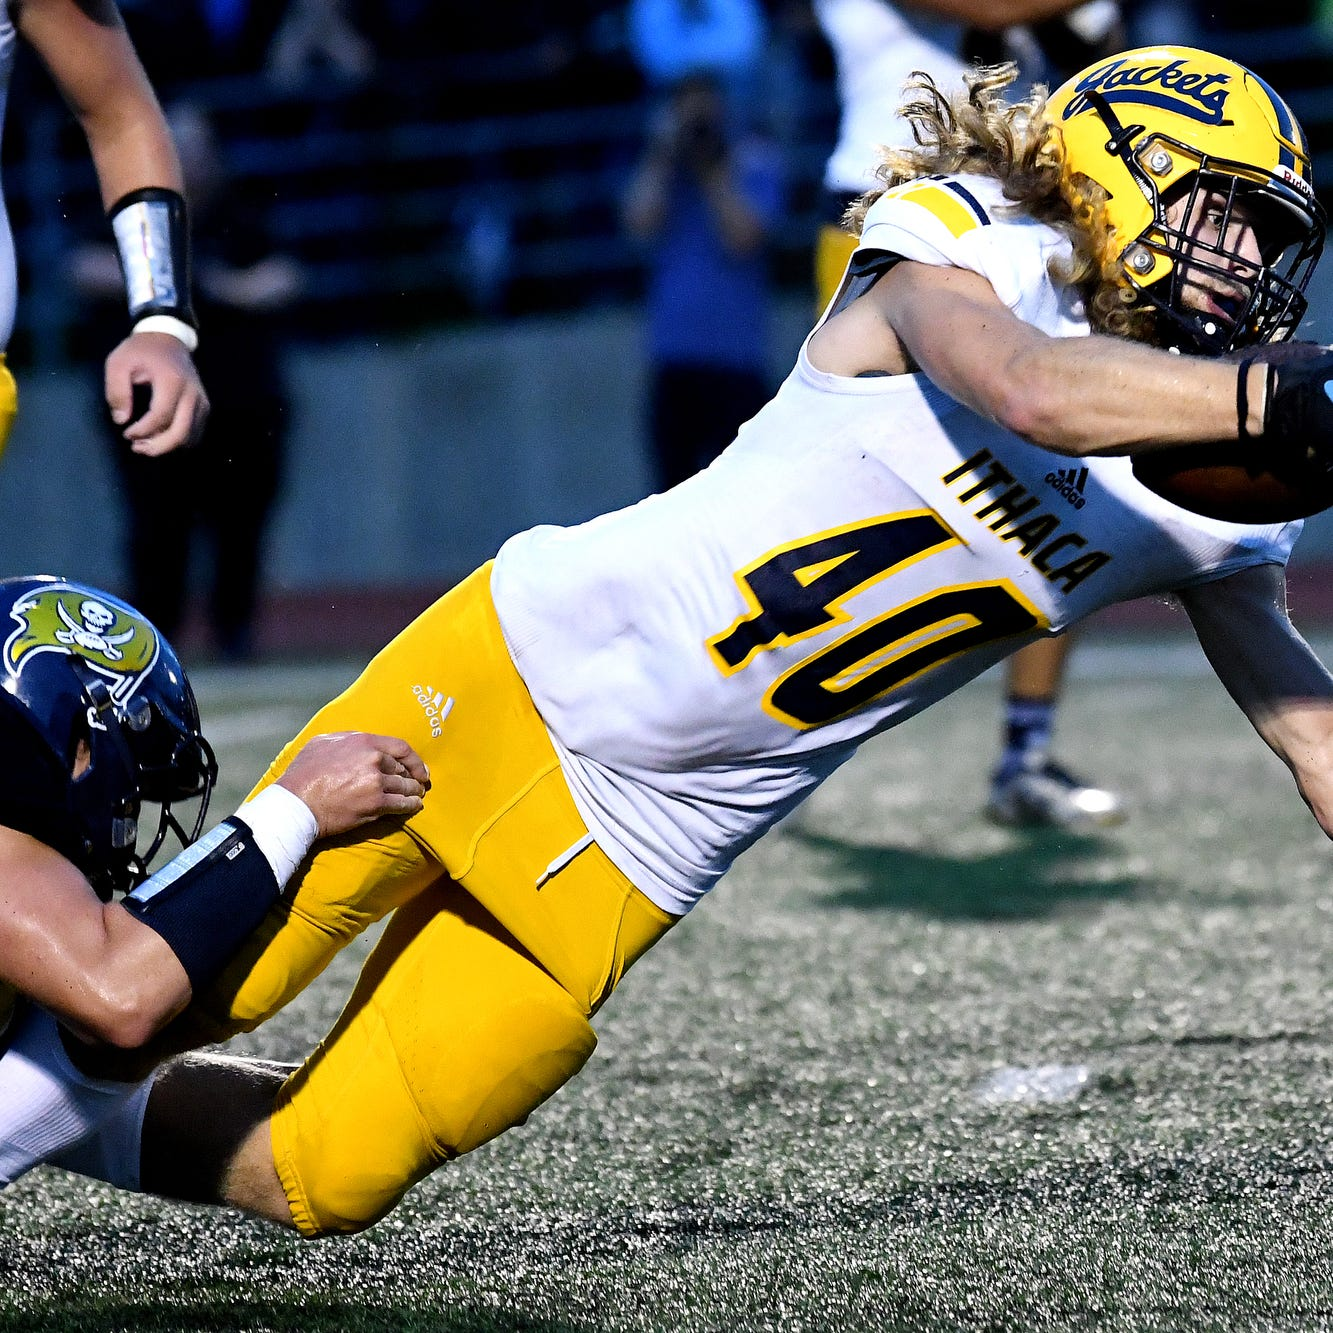 See where Lansing area teams are ranked in state high school football poll